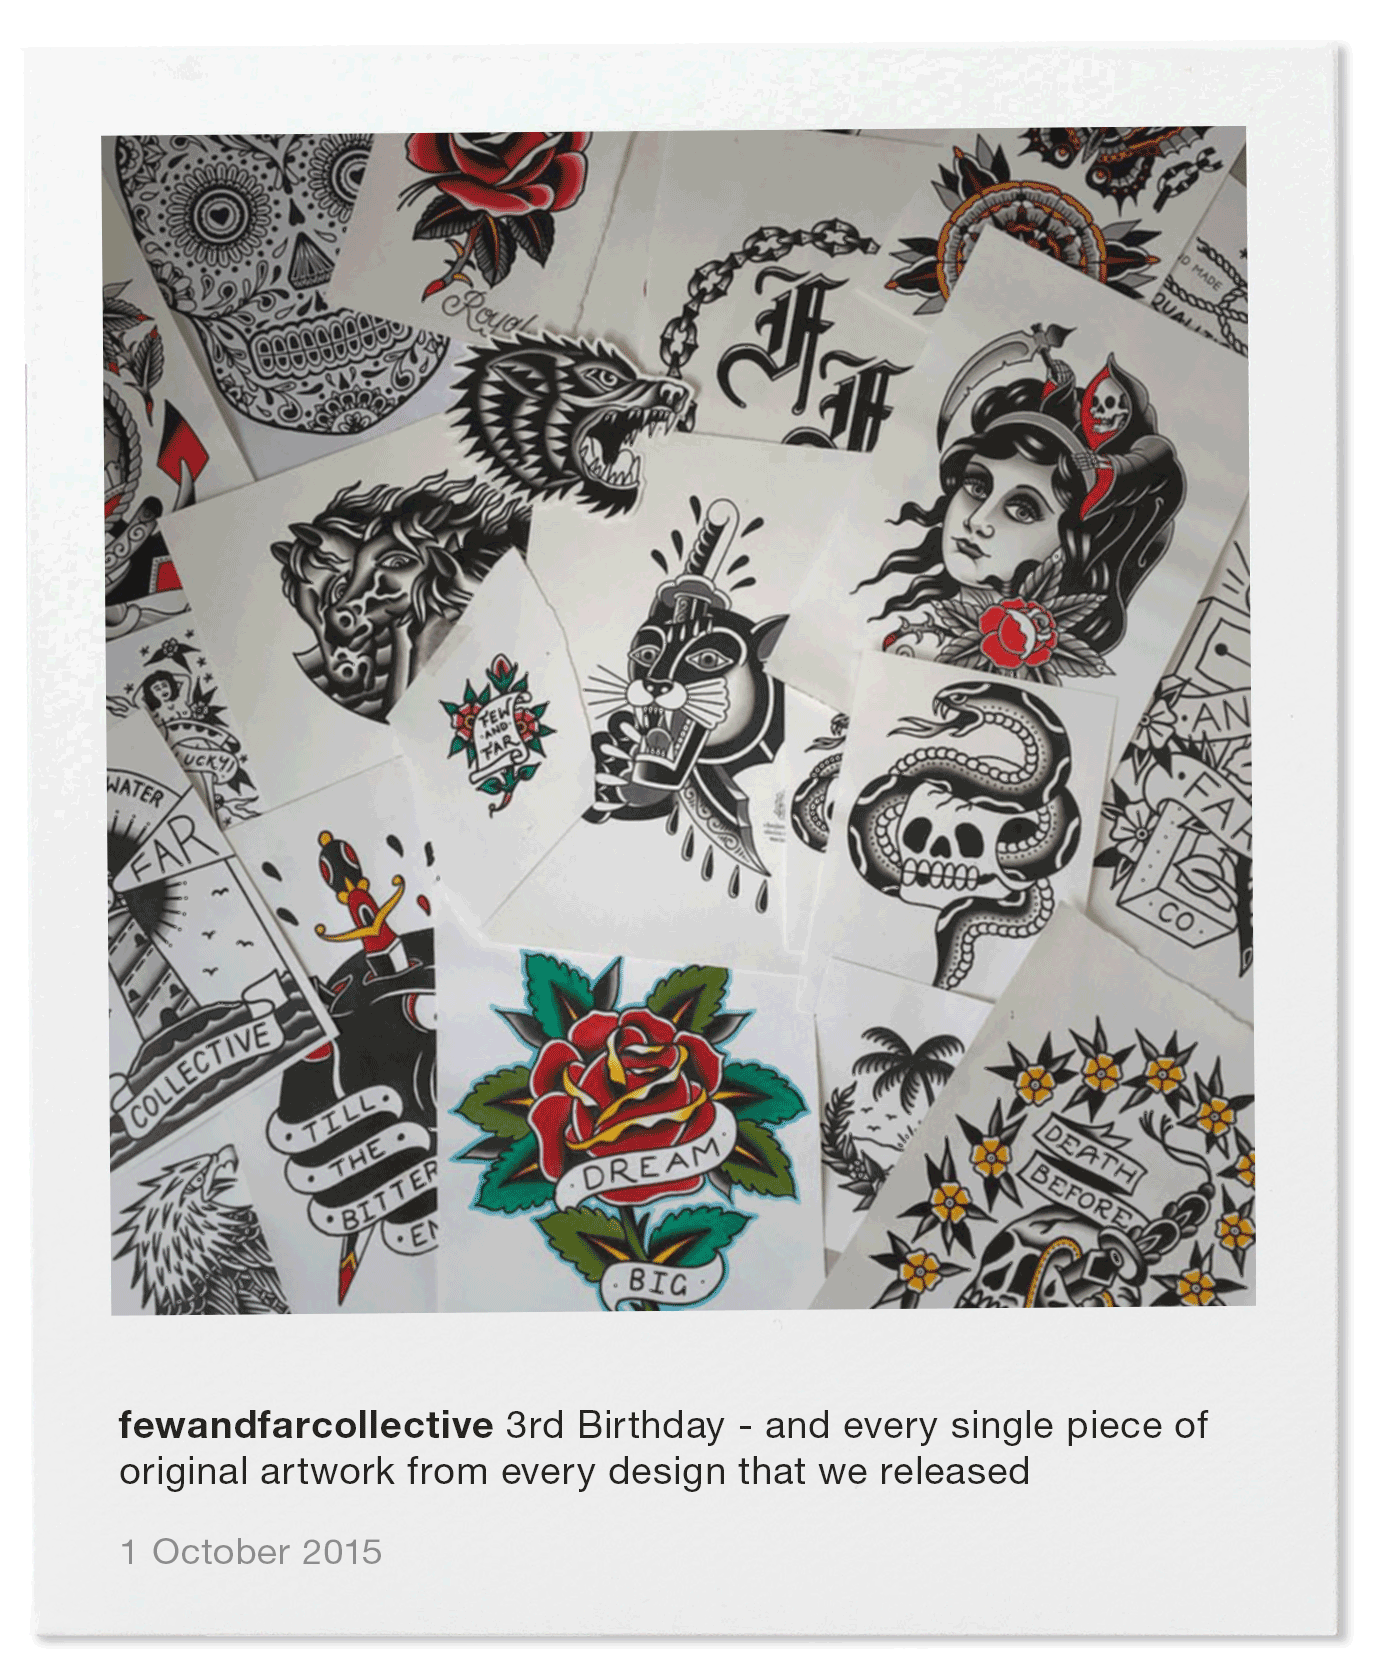 3rd Birthday - and every single piece of original artwork from every design that we released